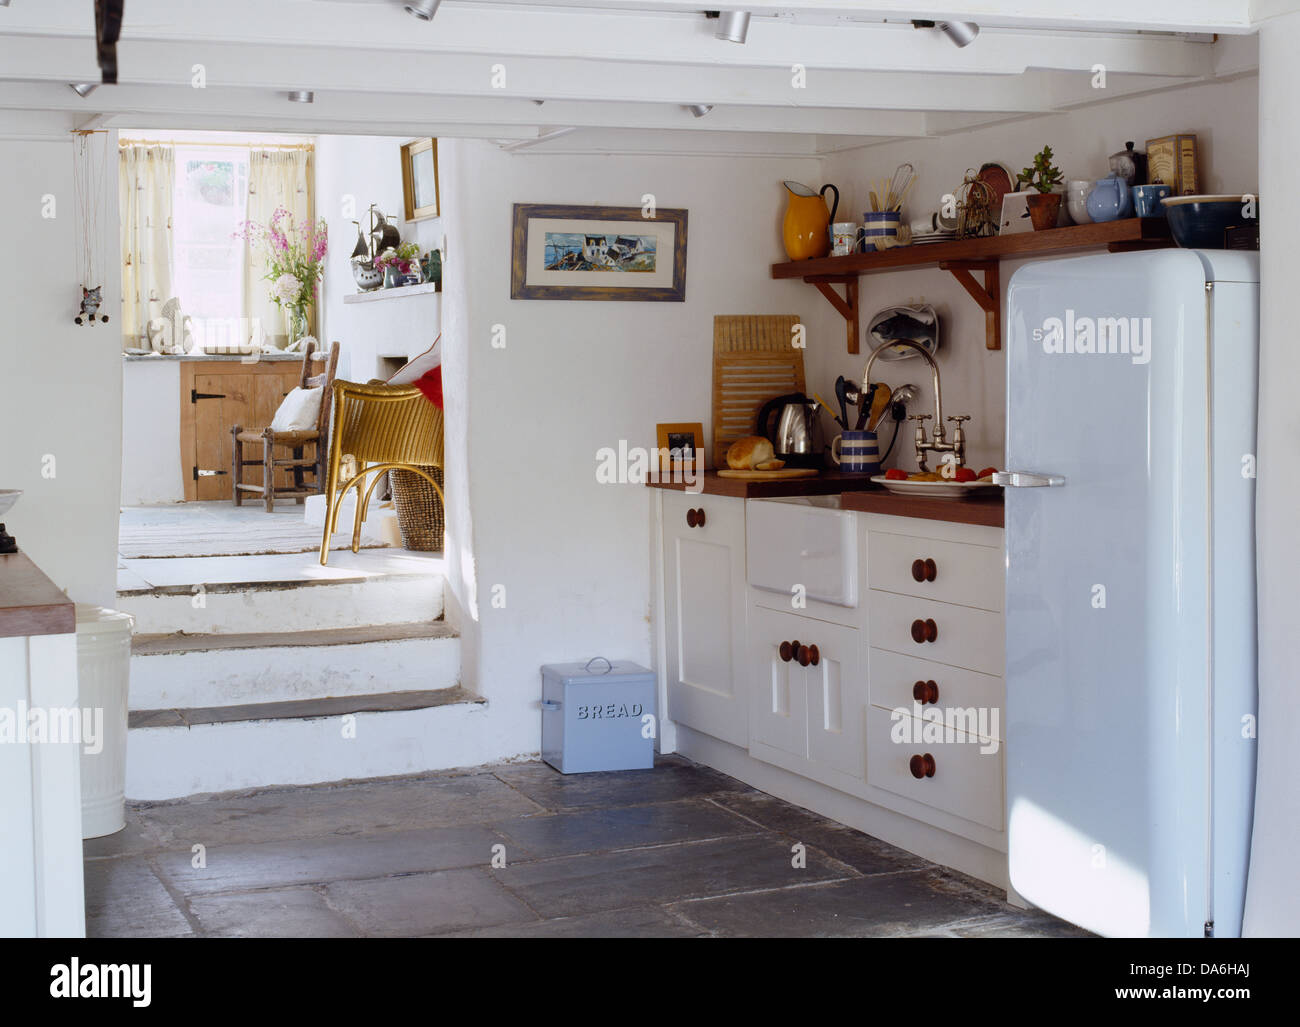 Stone Steps Leading Down Into Country Style Kitchen With